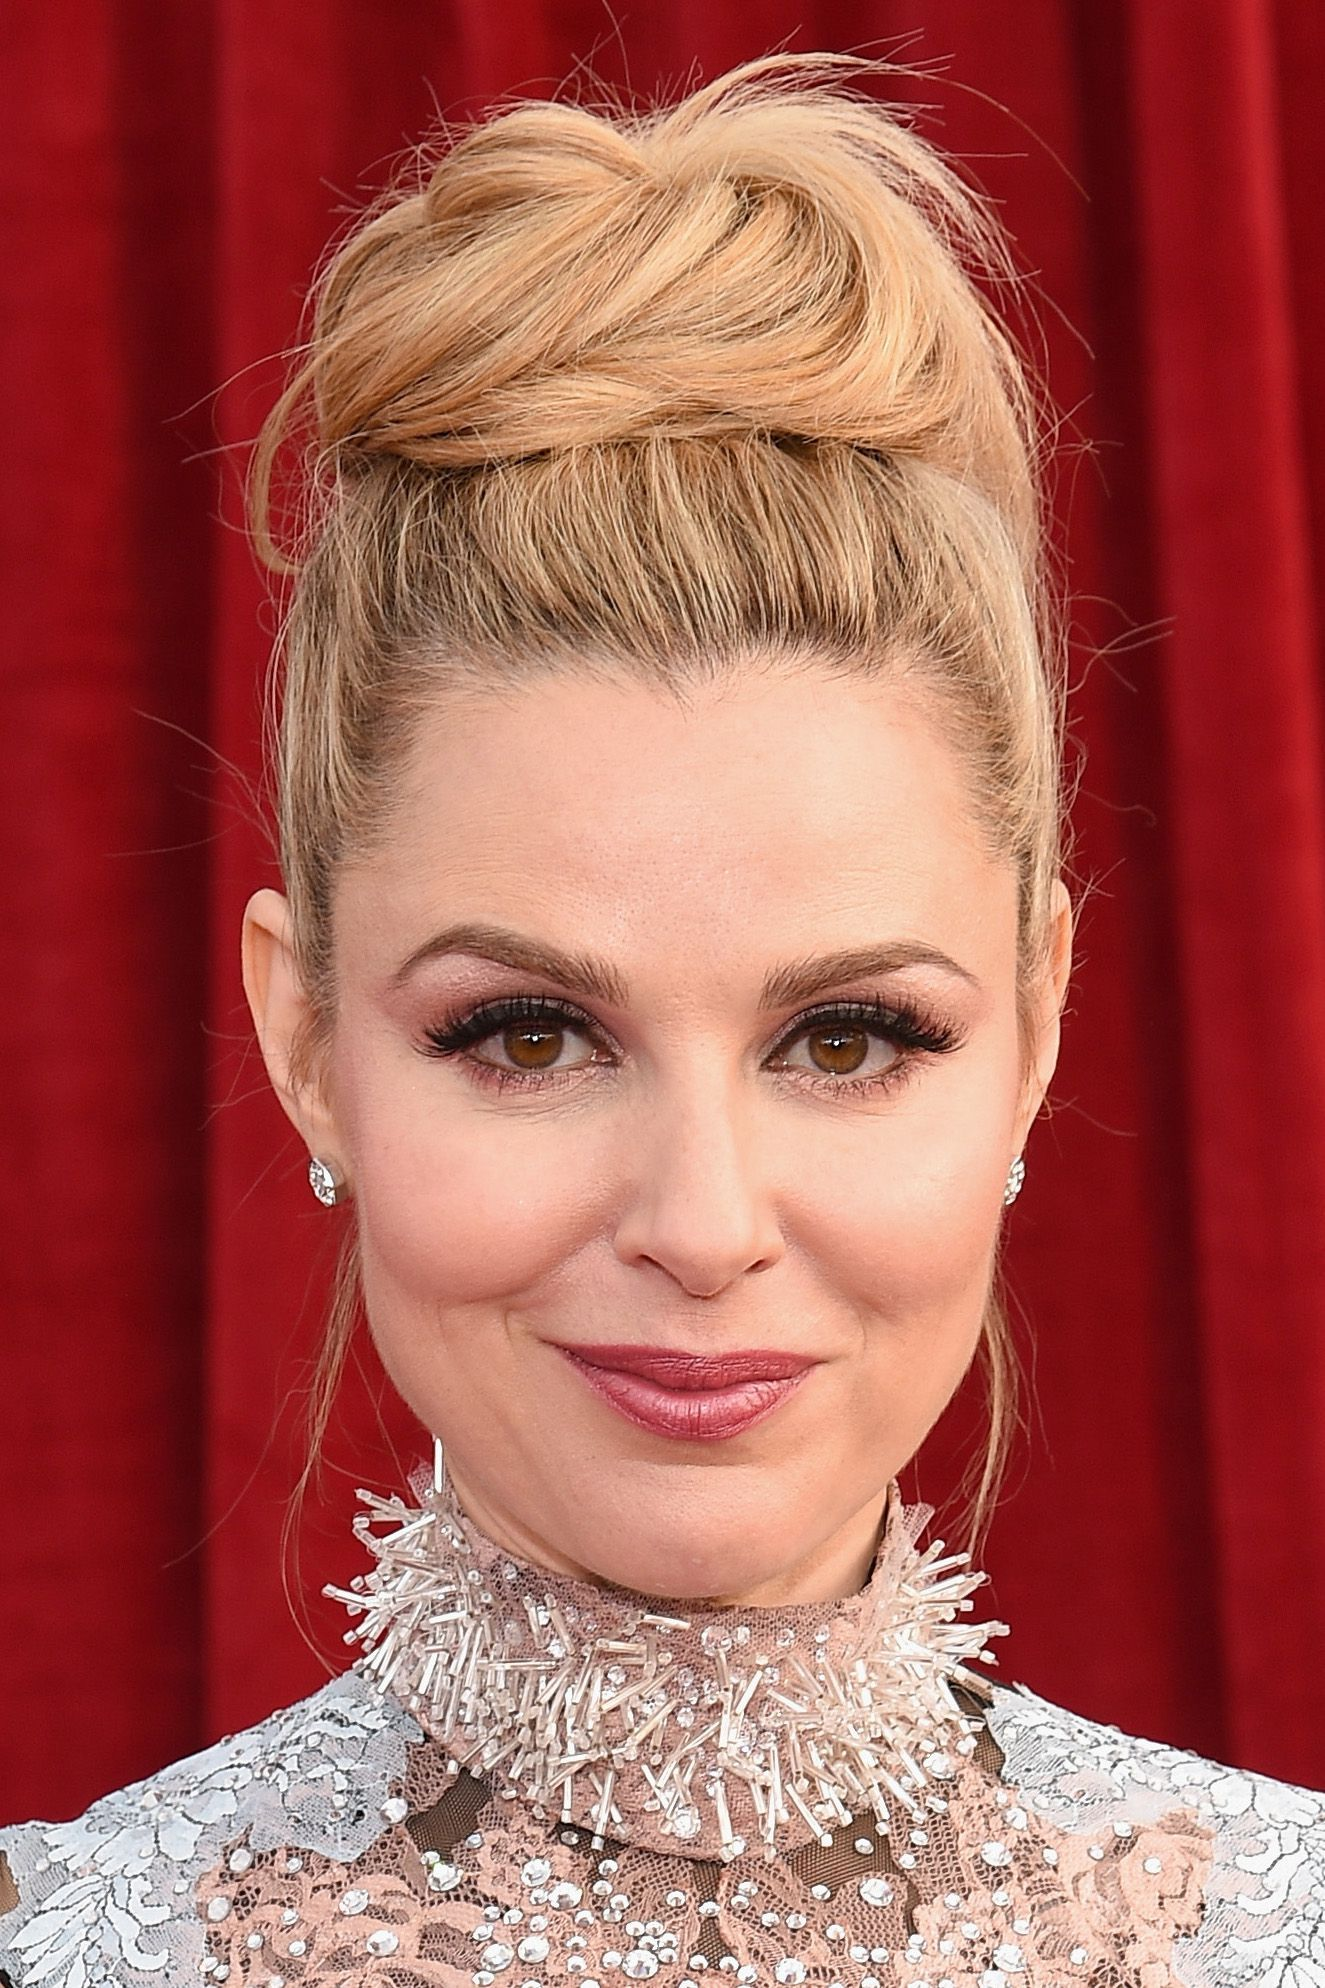 15 Updos That Look Amazing on Fine Hair | Thin hair updo ...